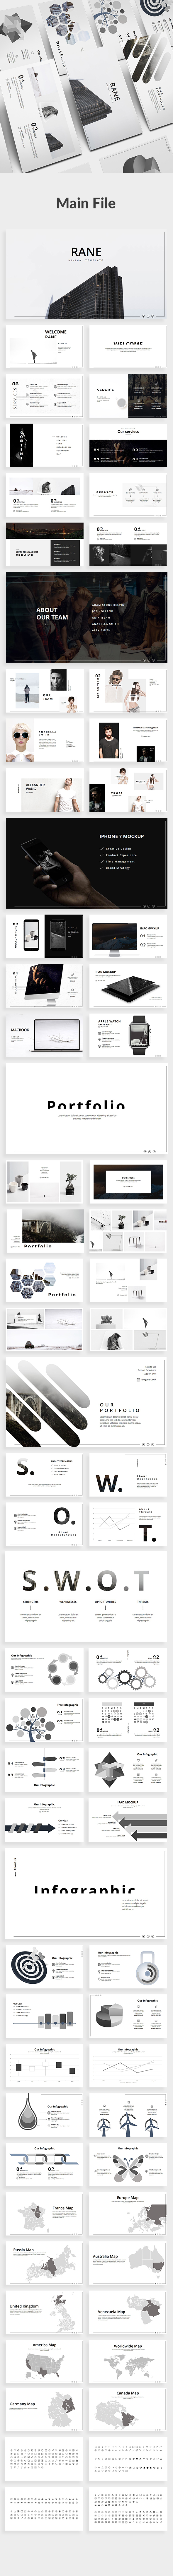 Rane Minimal Powerpoint Template - Creative PowerPoint Templates